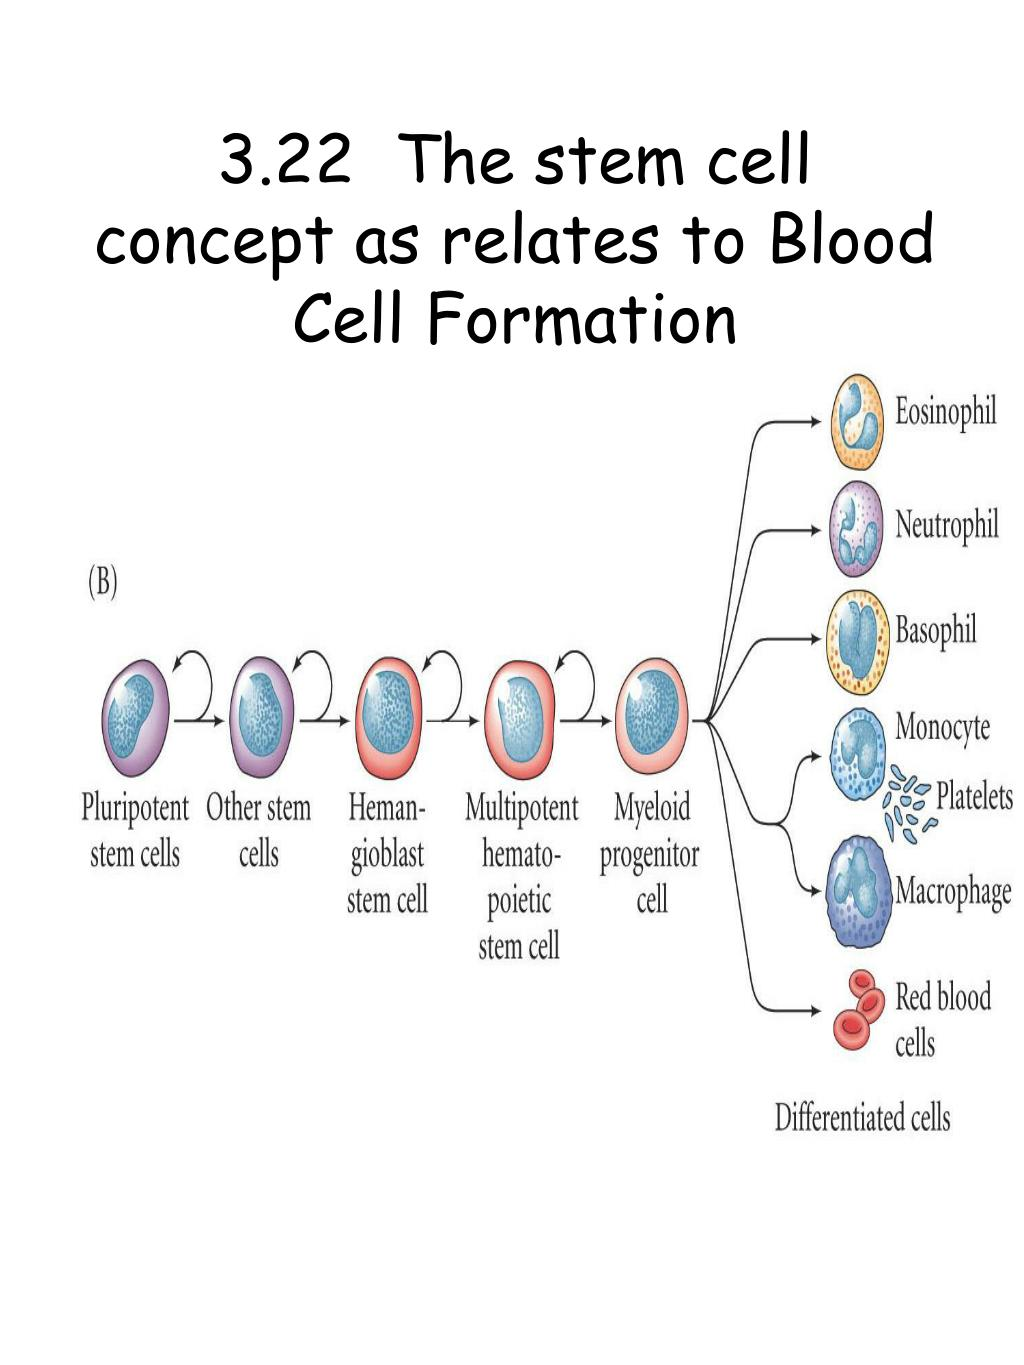 3.22  The stem cell concept as relates to Blood Cell Formation